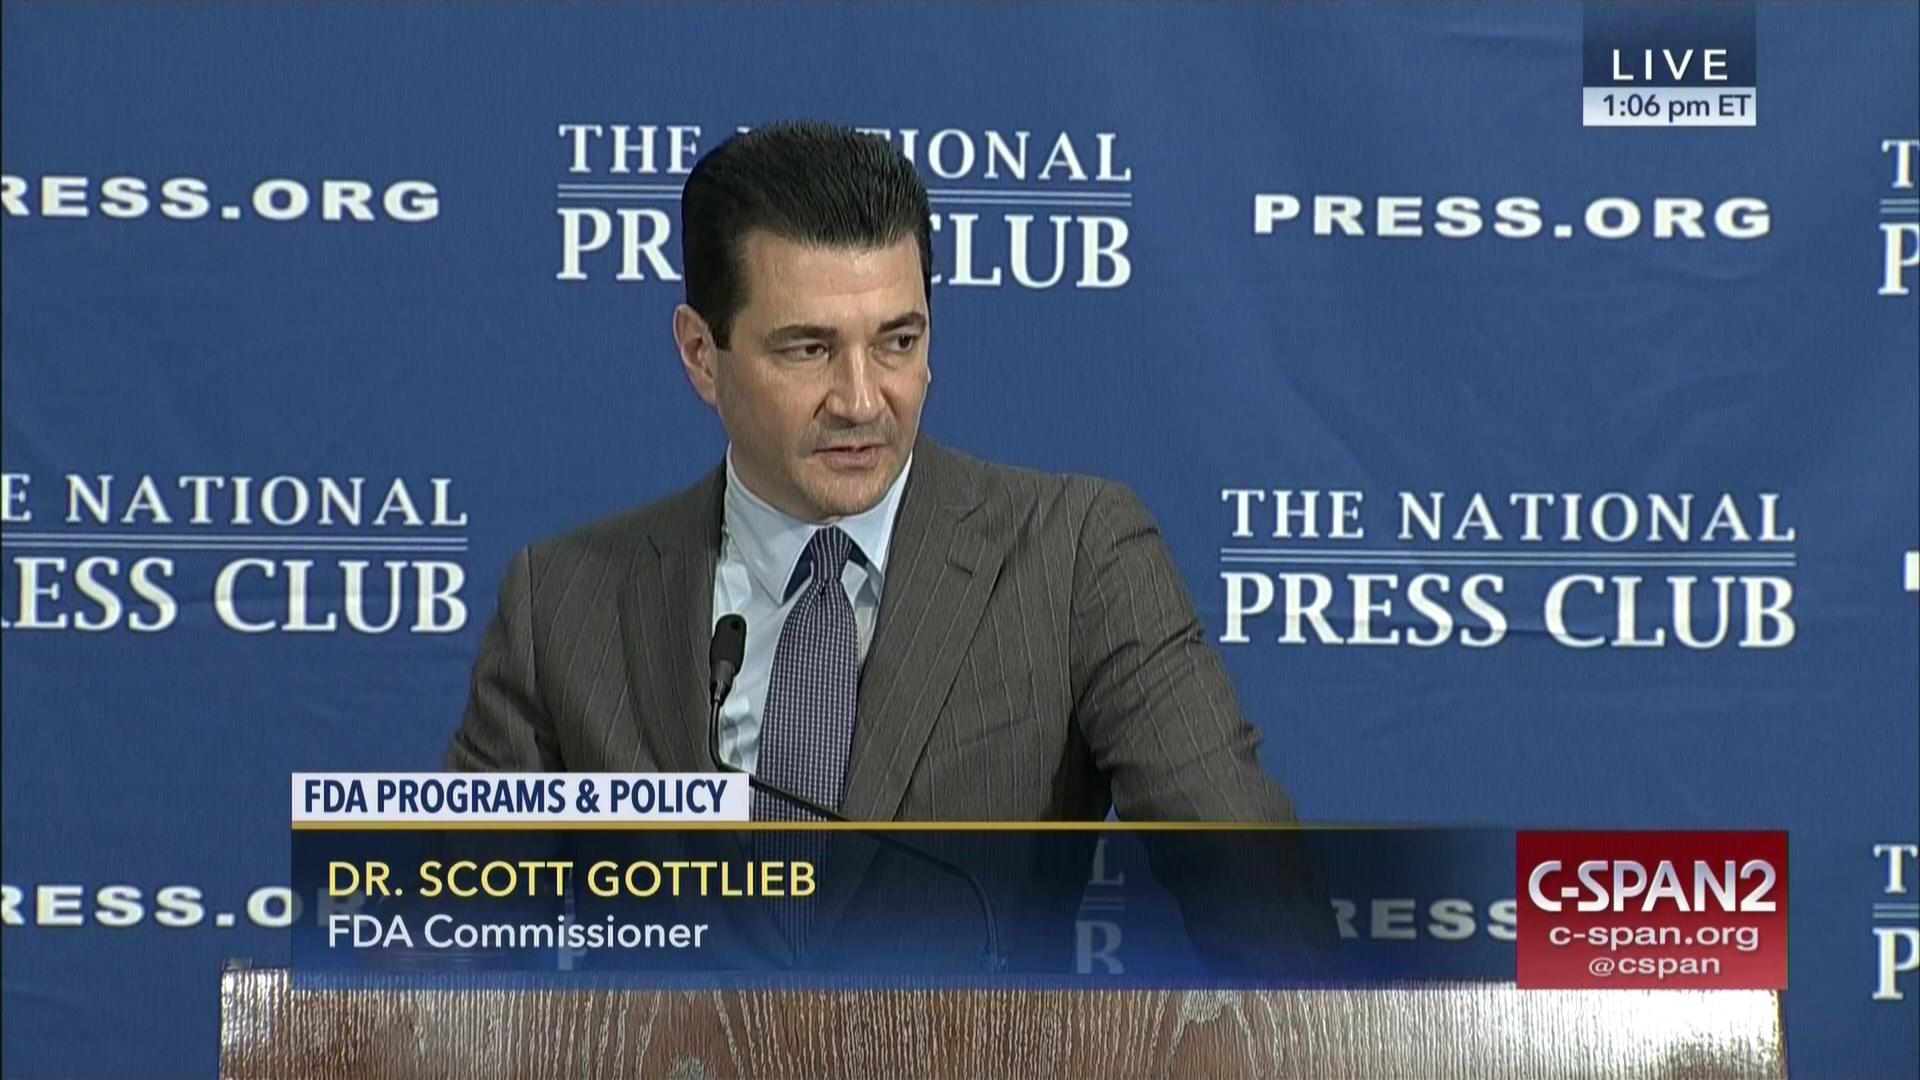 fda commissioner scott gottlieb addresses national press club nov 3 2017